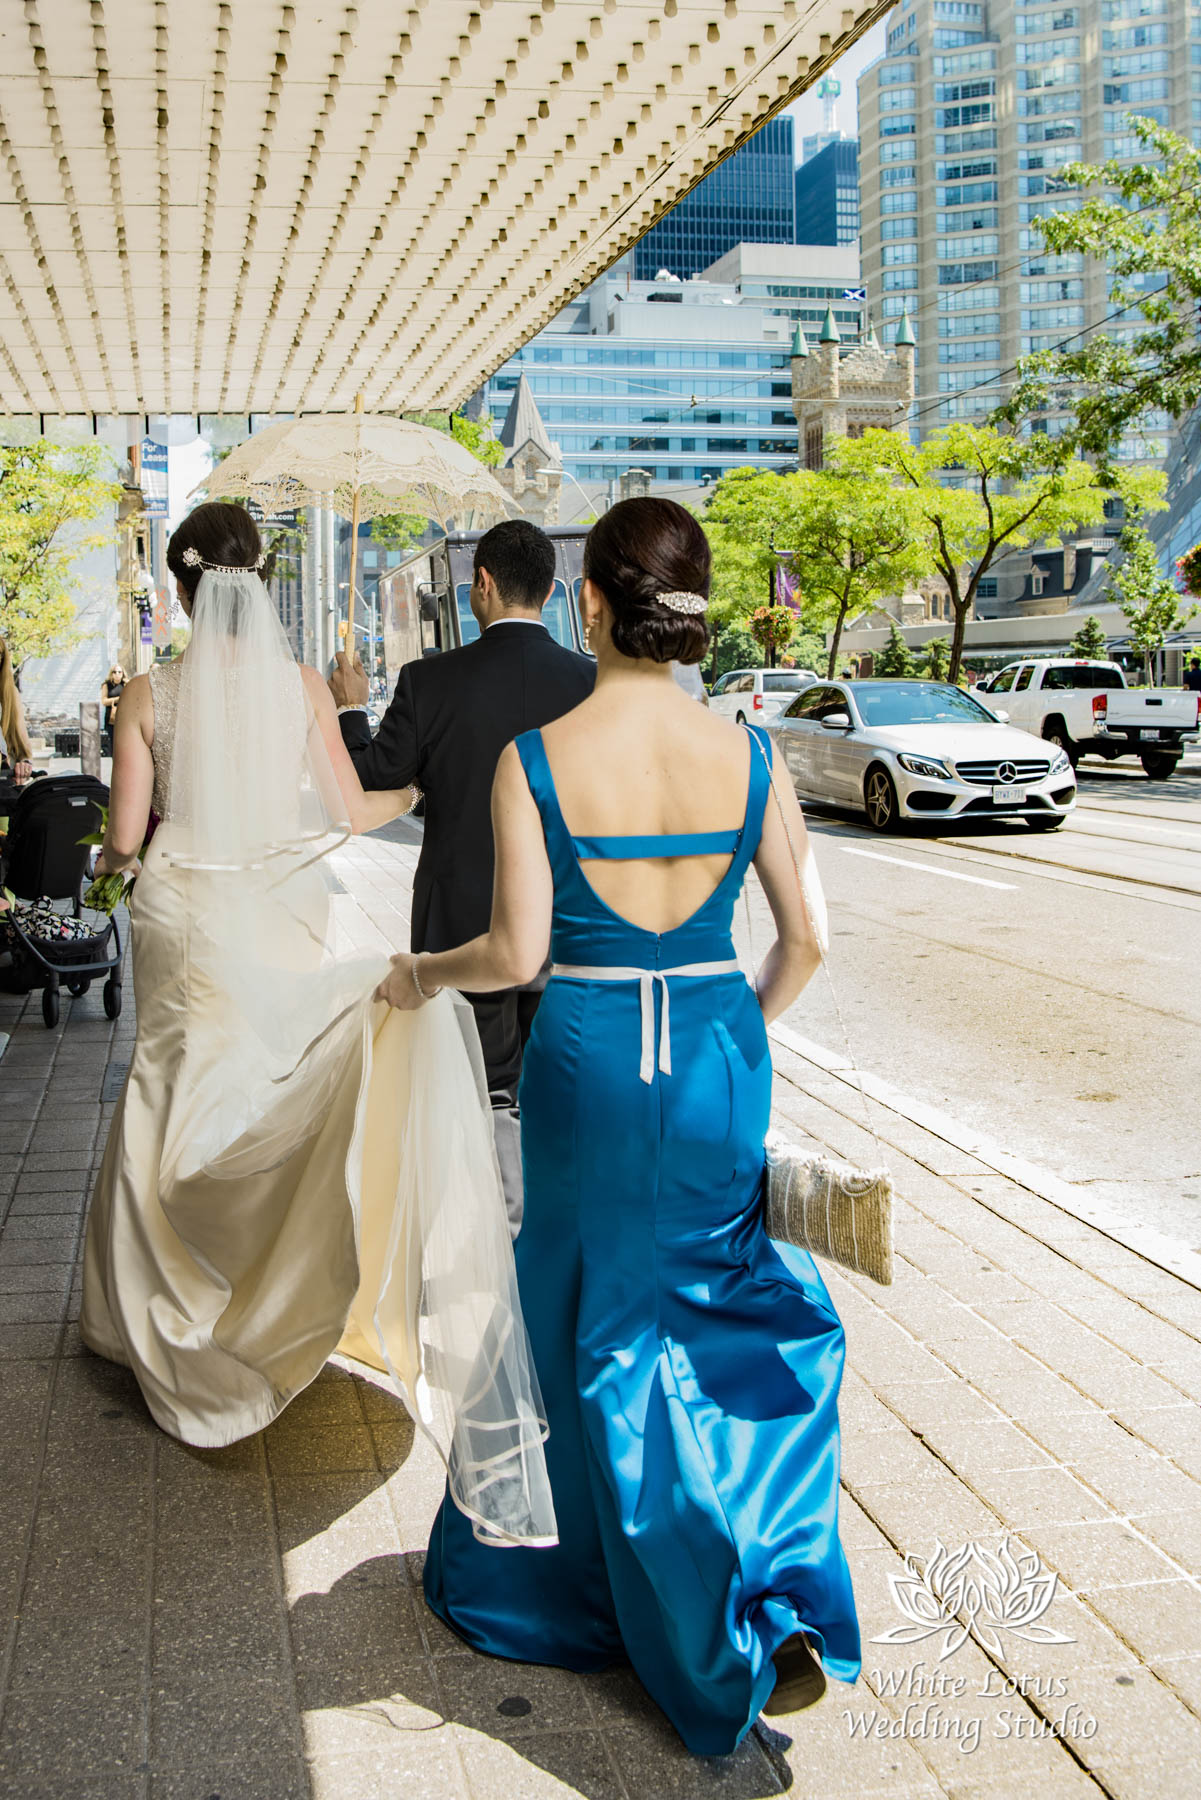 069 - Wedding - Toronto - Downtown wedding photo-walk - PW